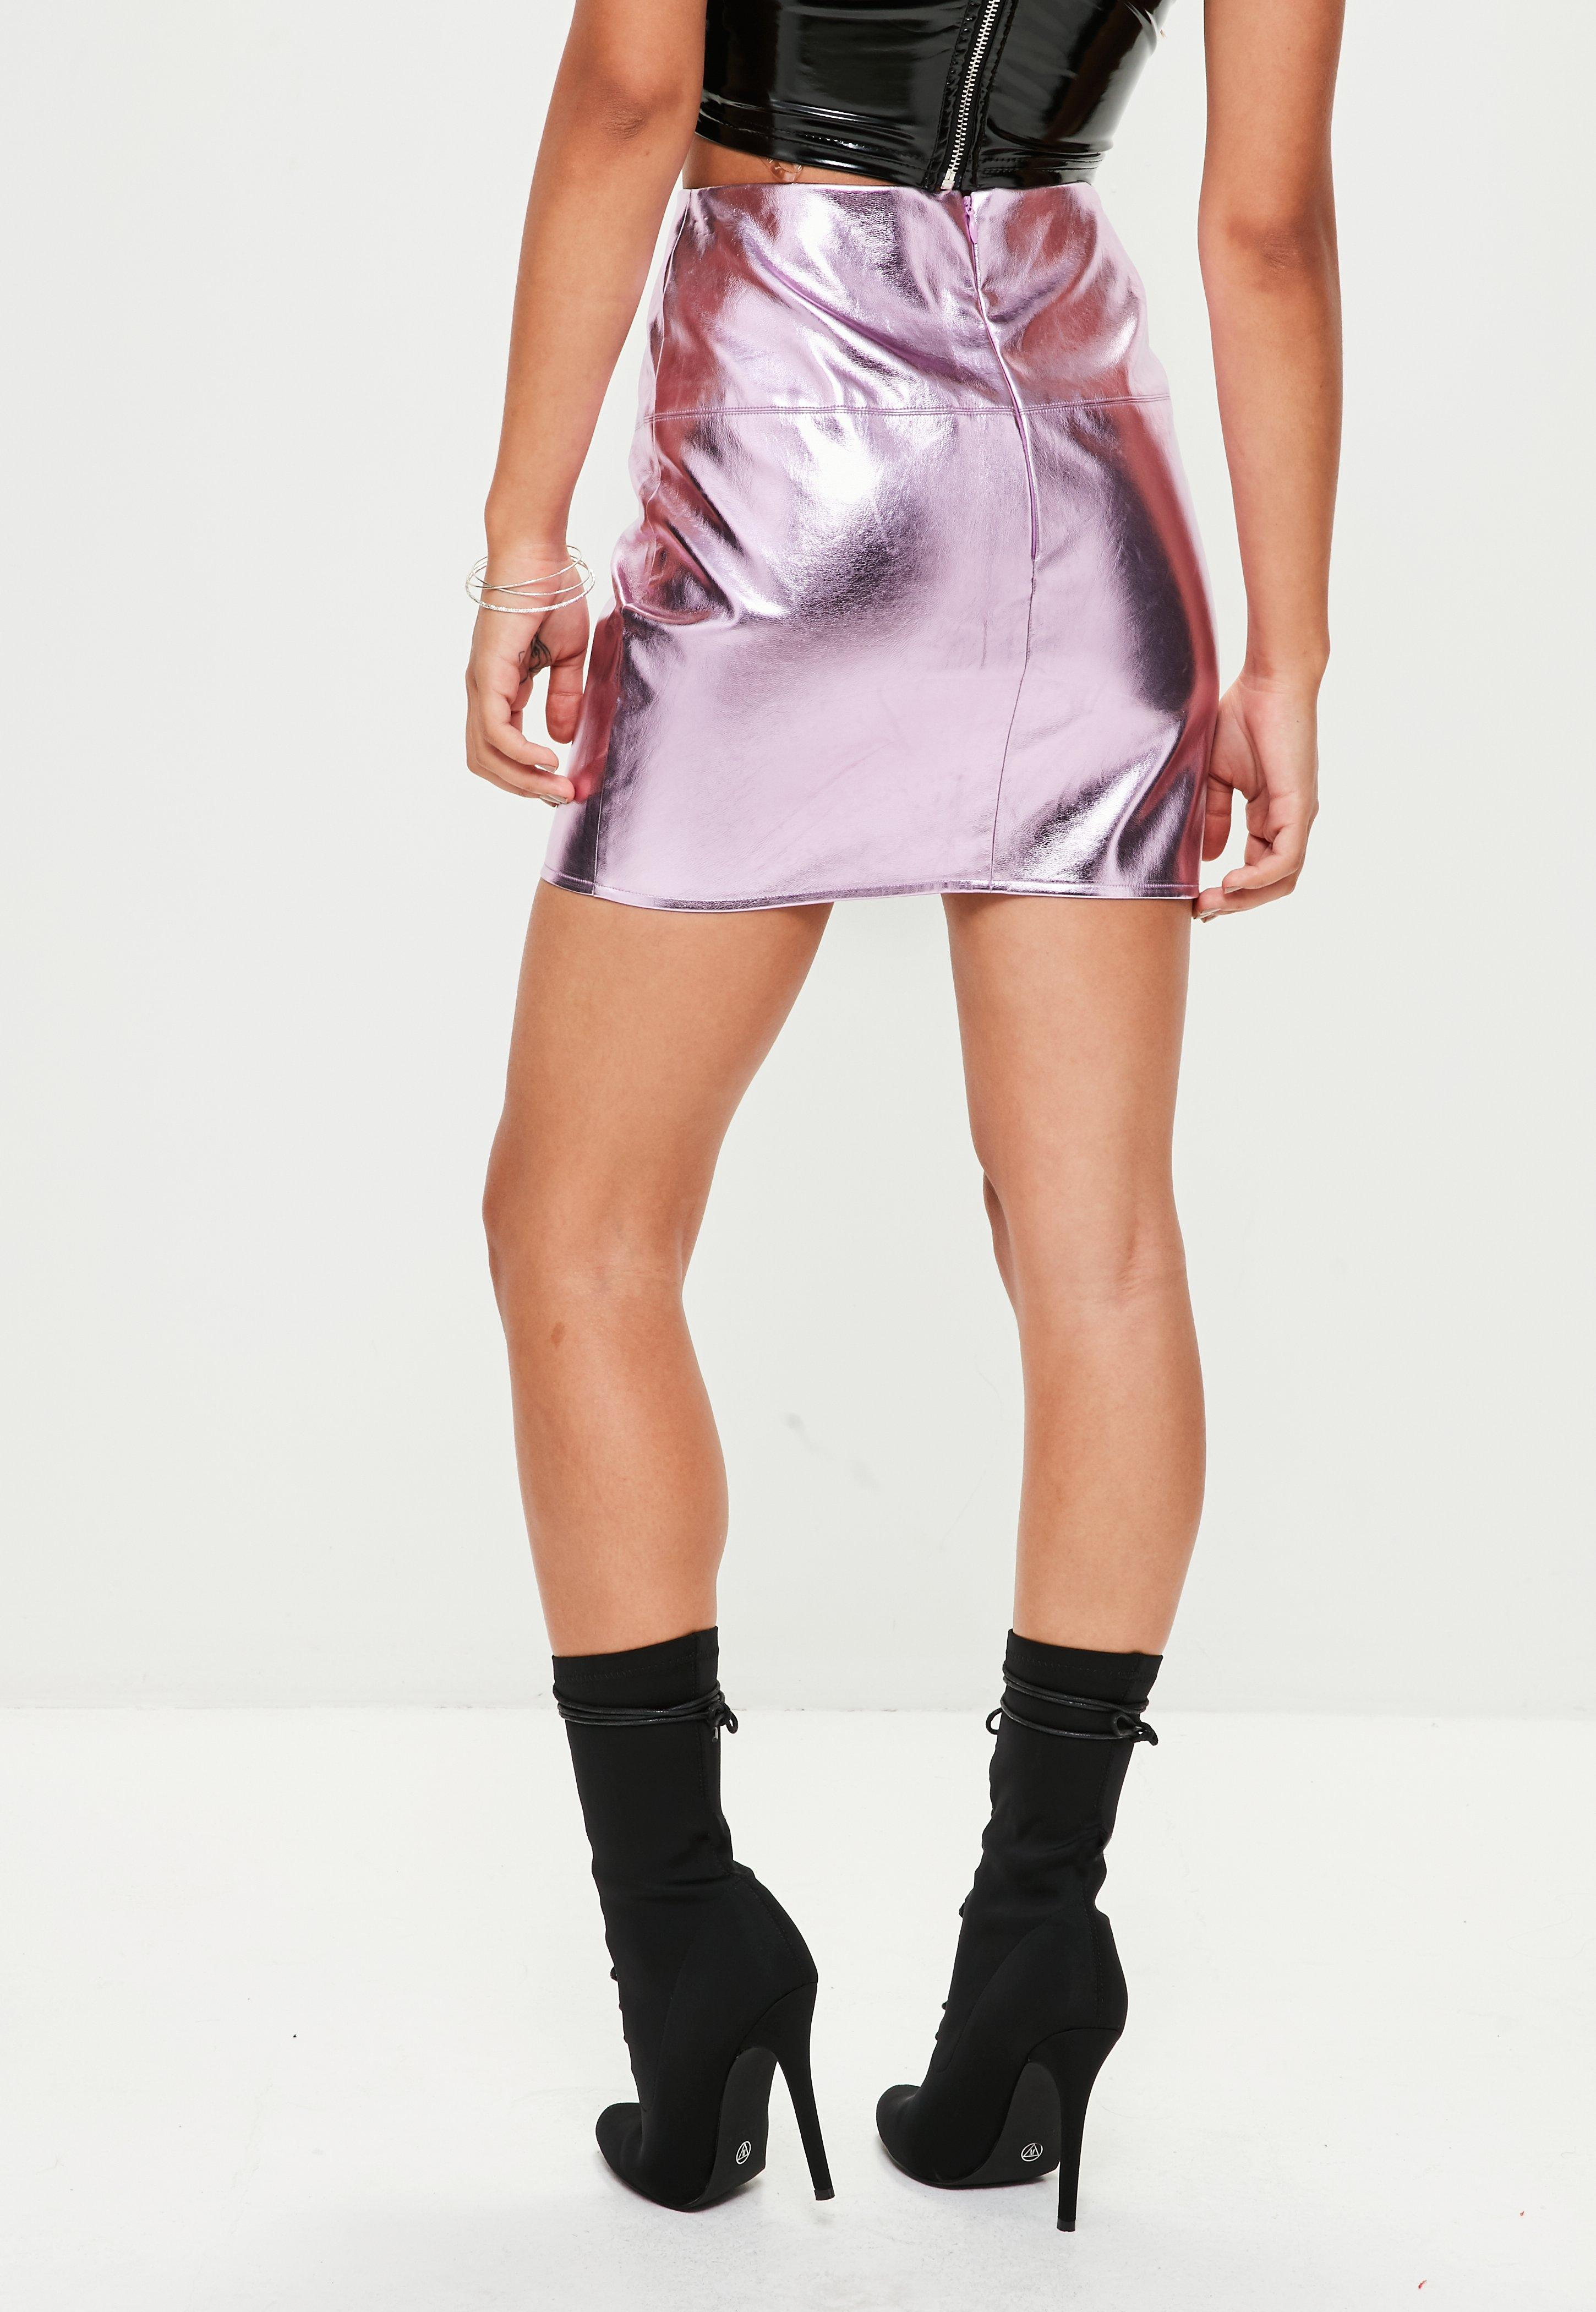 Obviously were Pink mini skirt congratulate, you